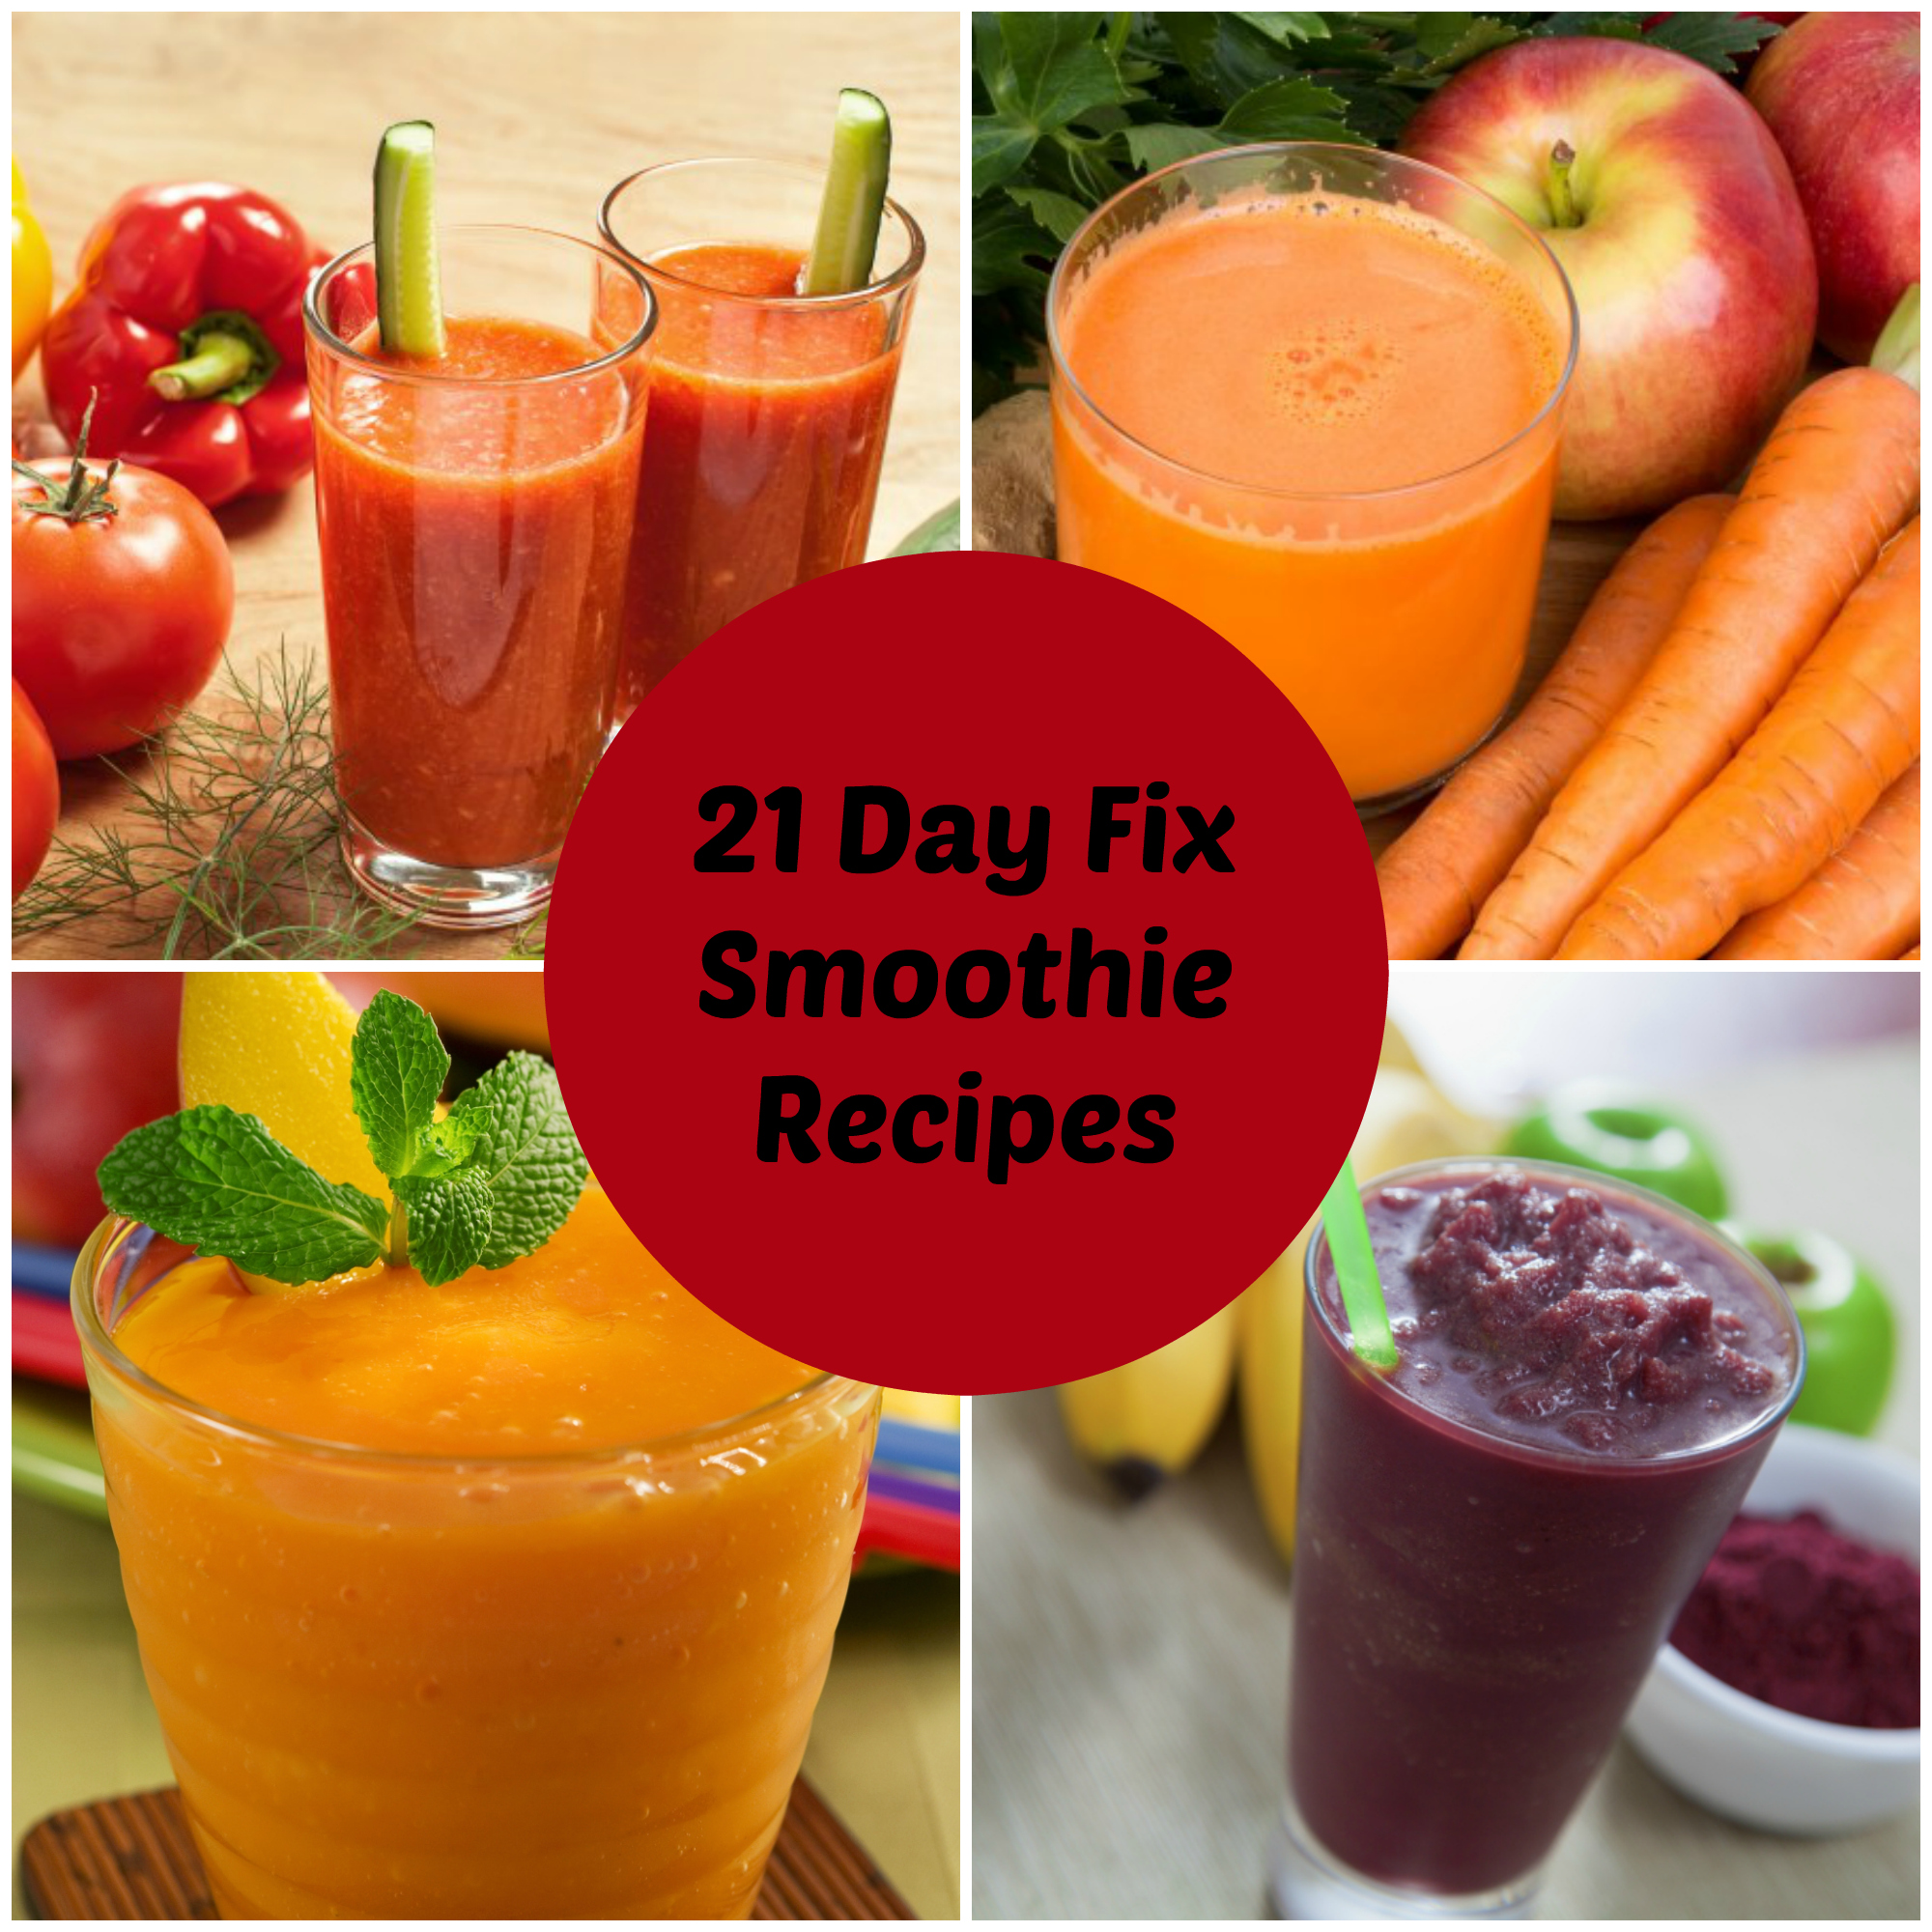 How To Make Smoothies For The 21 Day Fix All Nutribullet Recipes